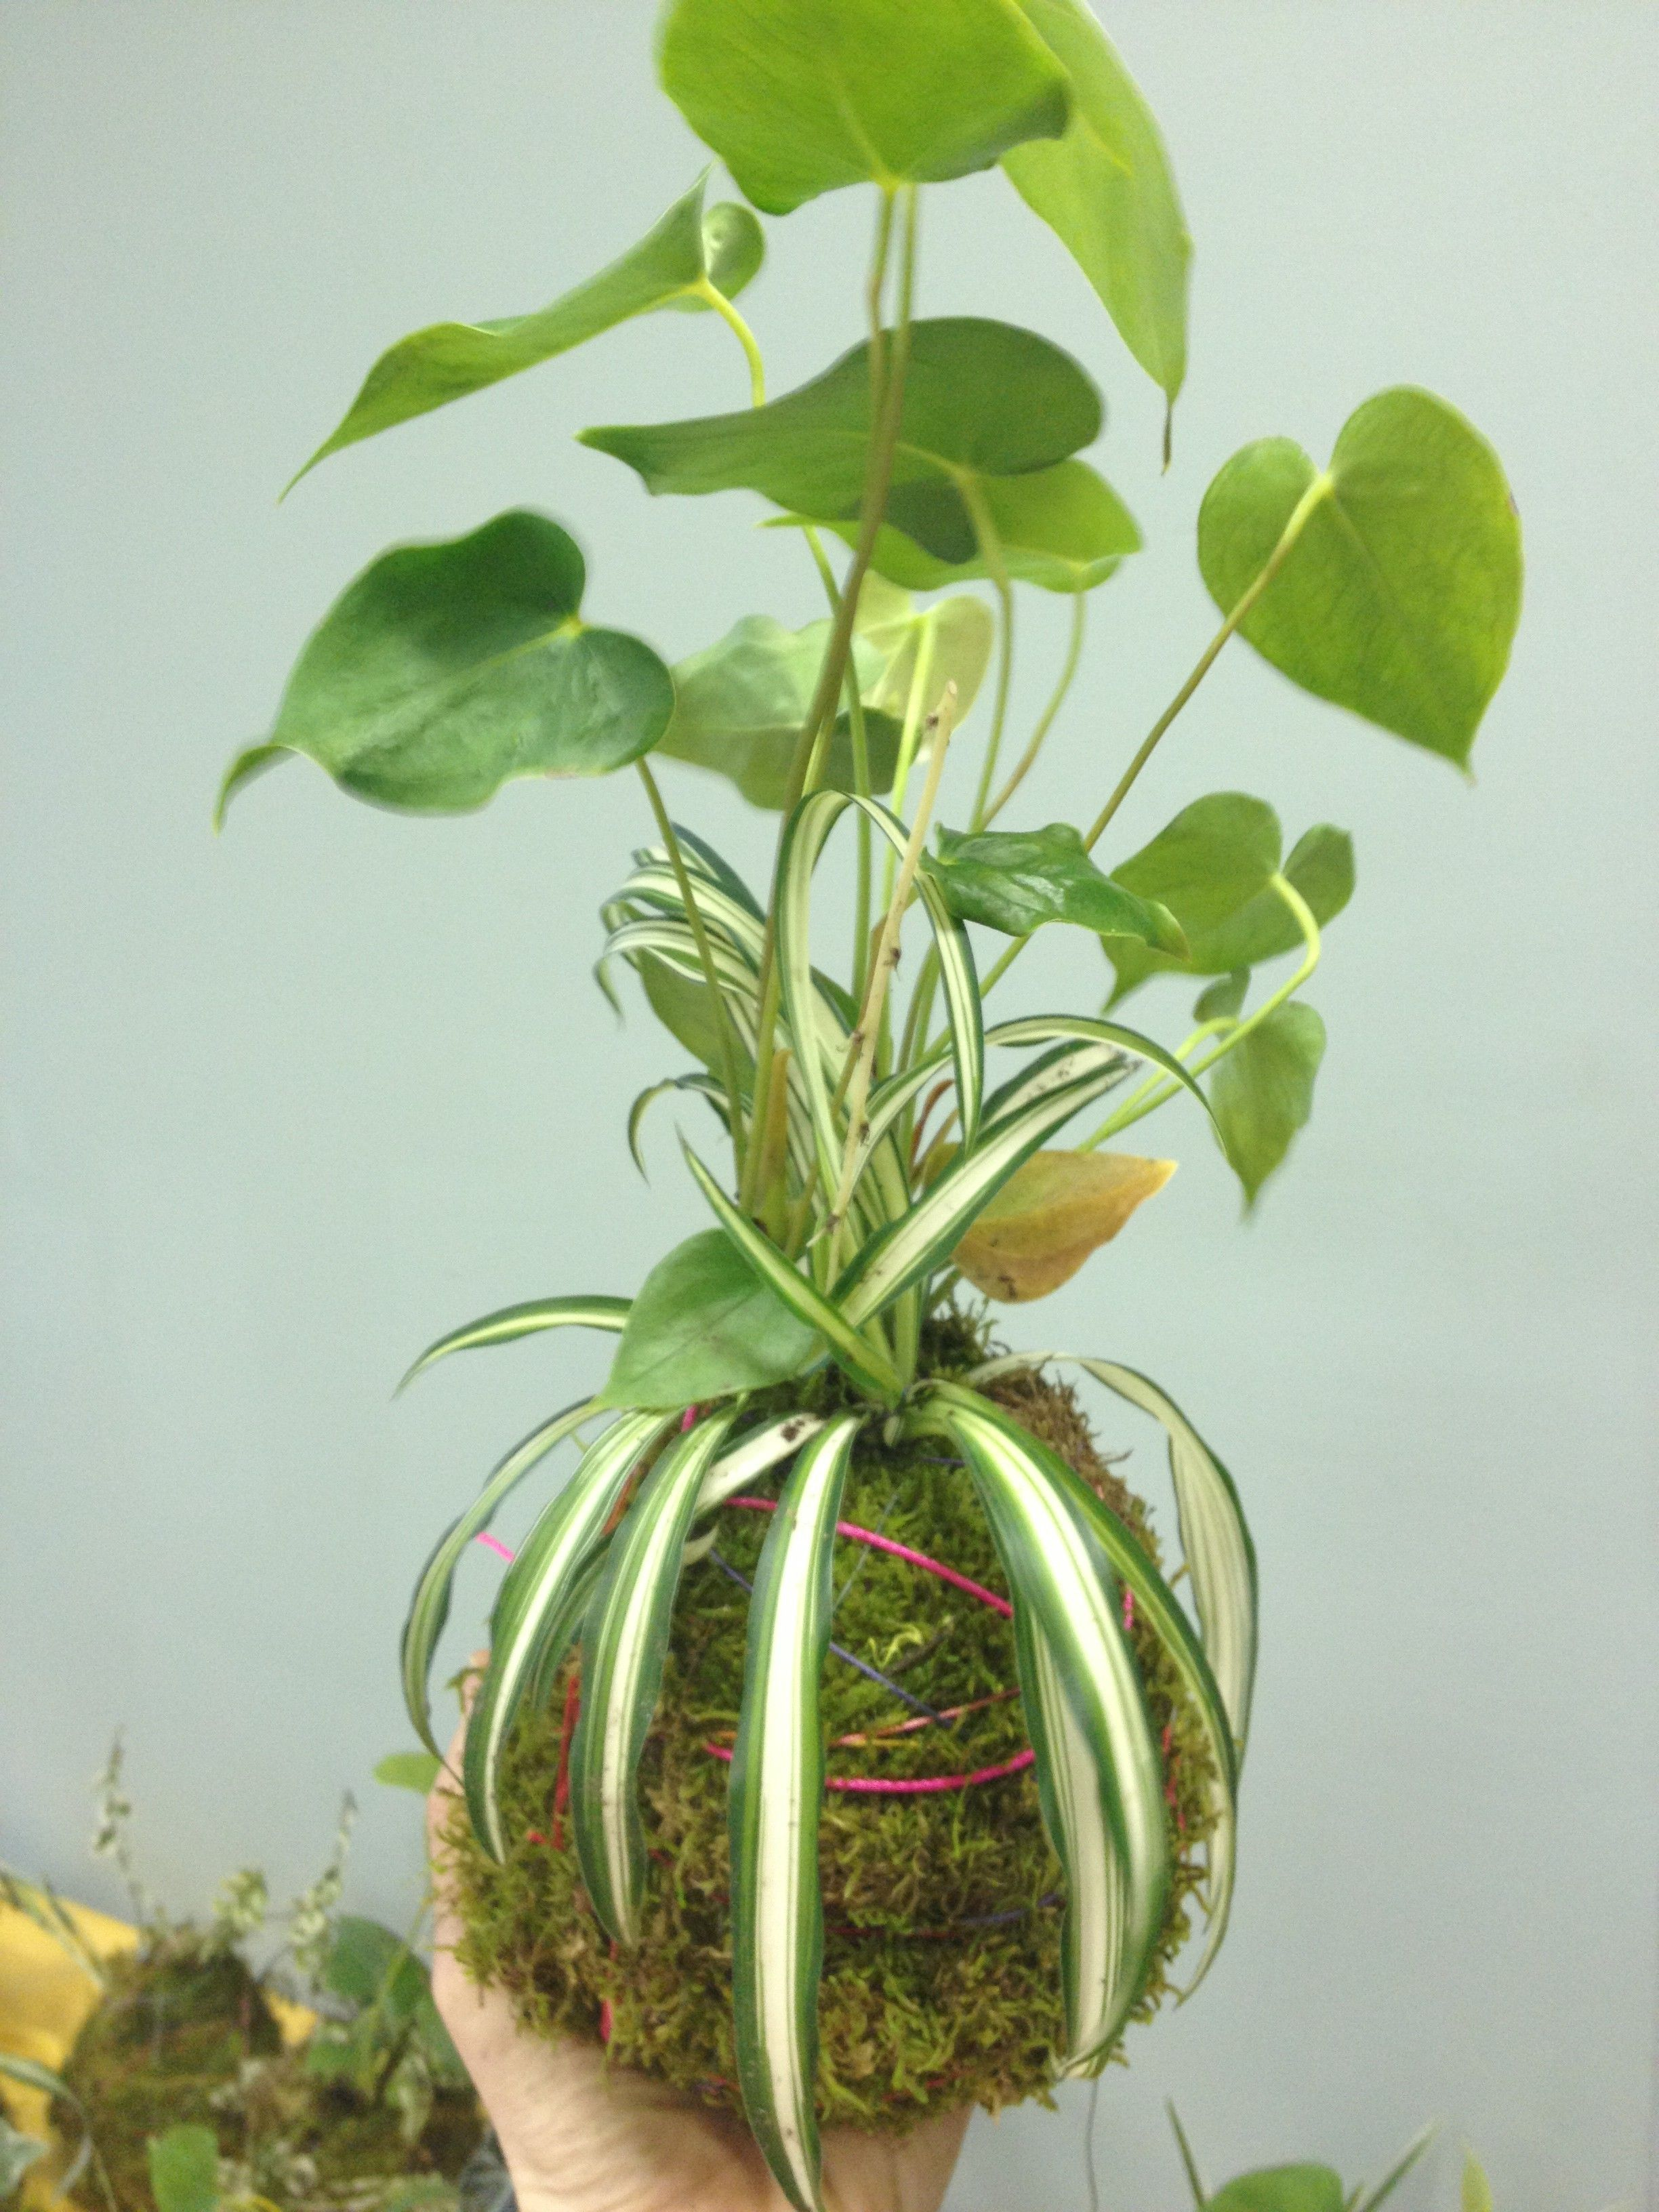 Unique Kokedama Ball Ideas For Hanging Garden Plants Selber Machen